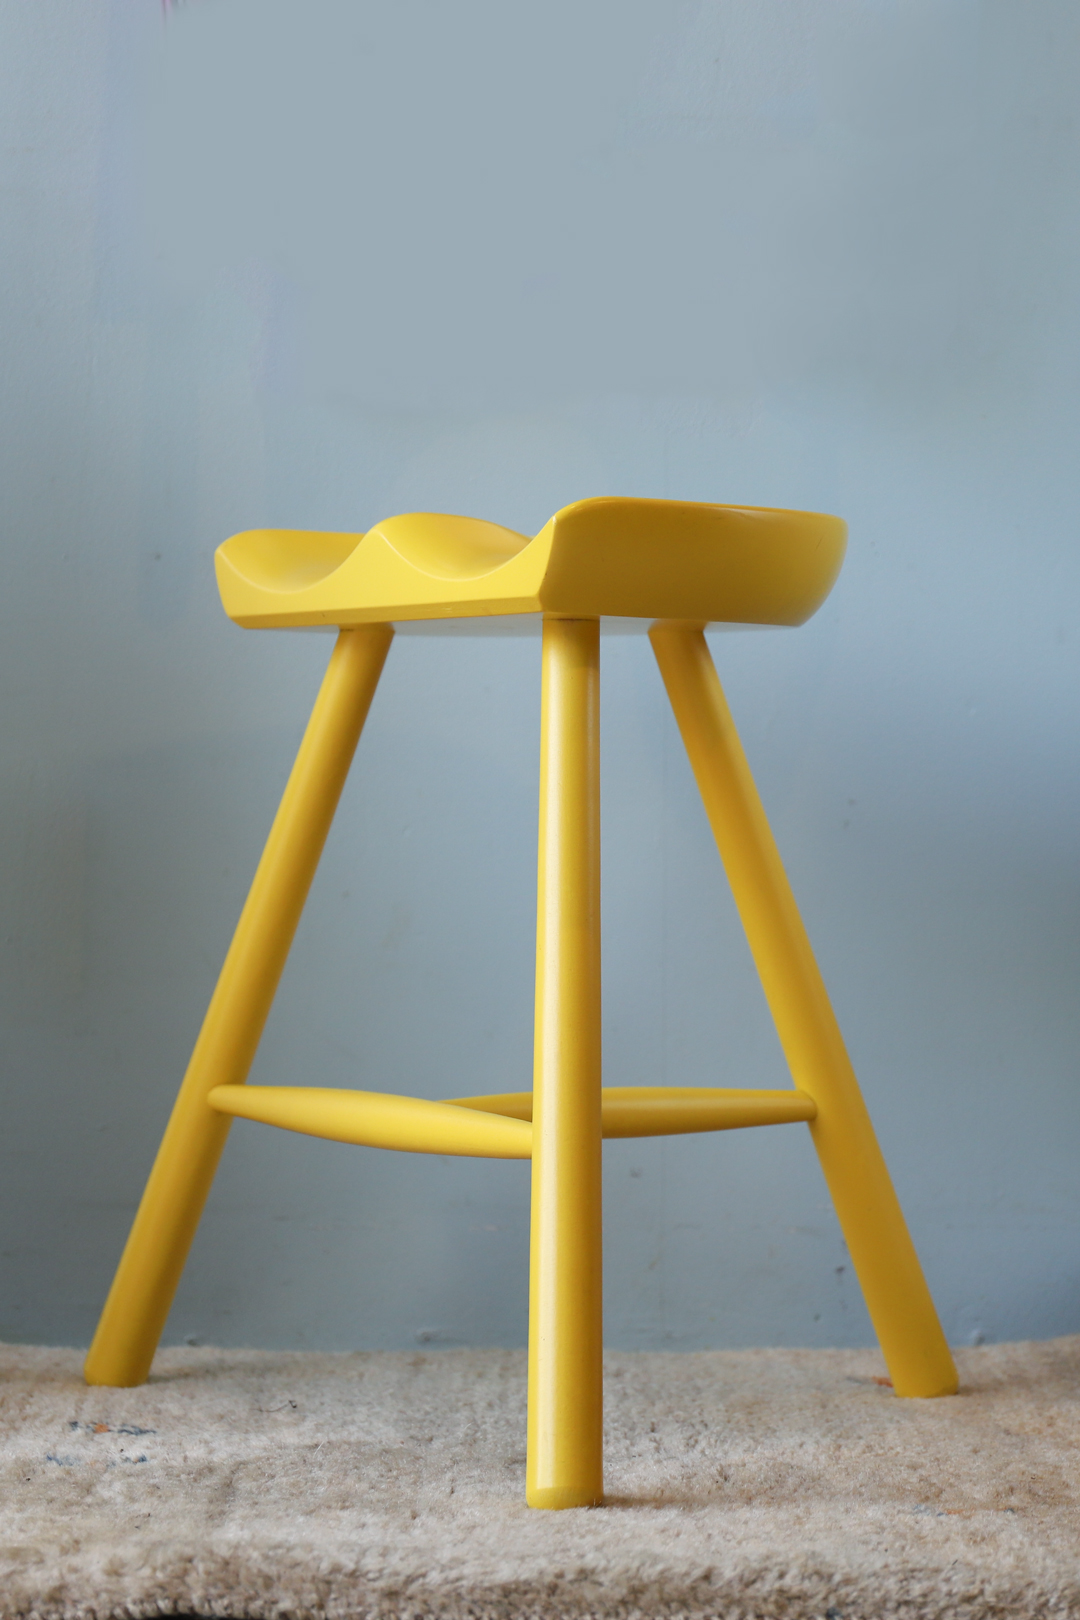 werner Shoemaker Chair No.49 made in Denmark/ワーナー シューメーカーチェア カラー イエロー スツール デンマーク 北欧家具